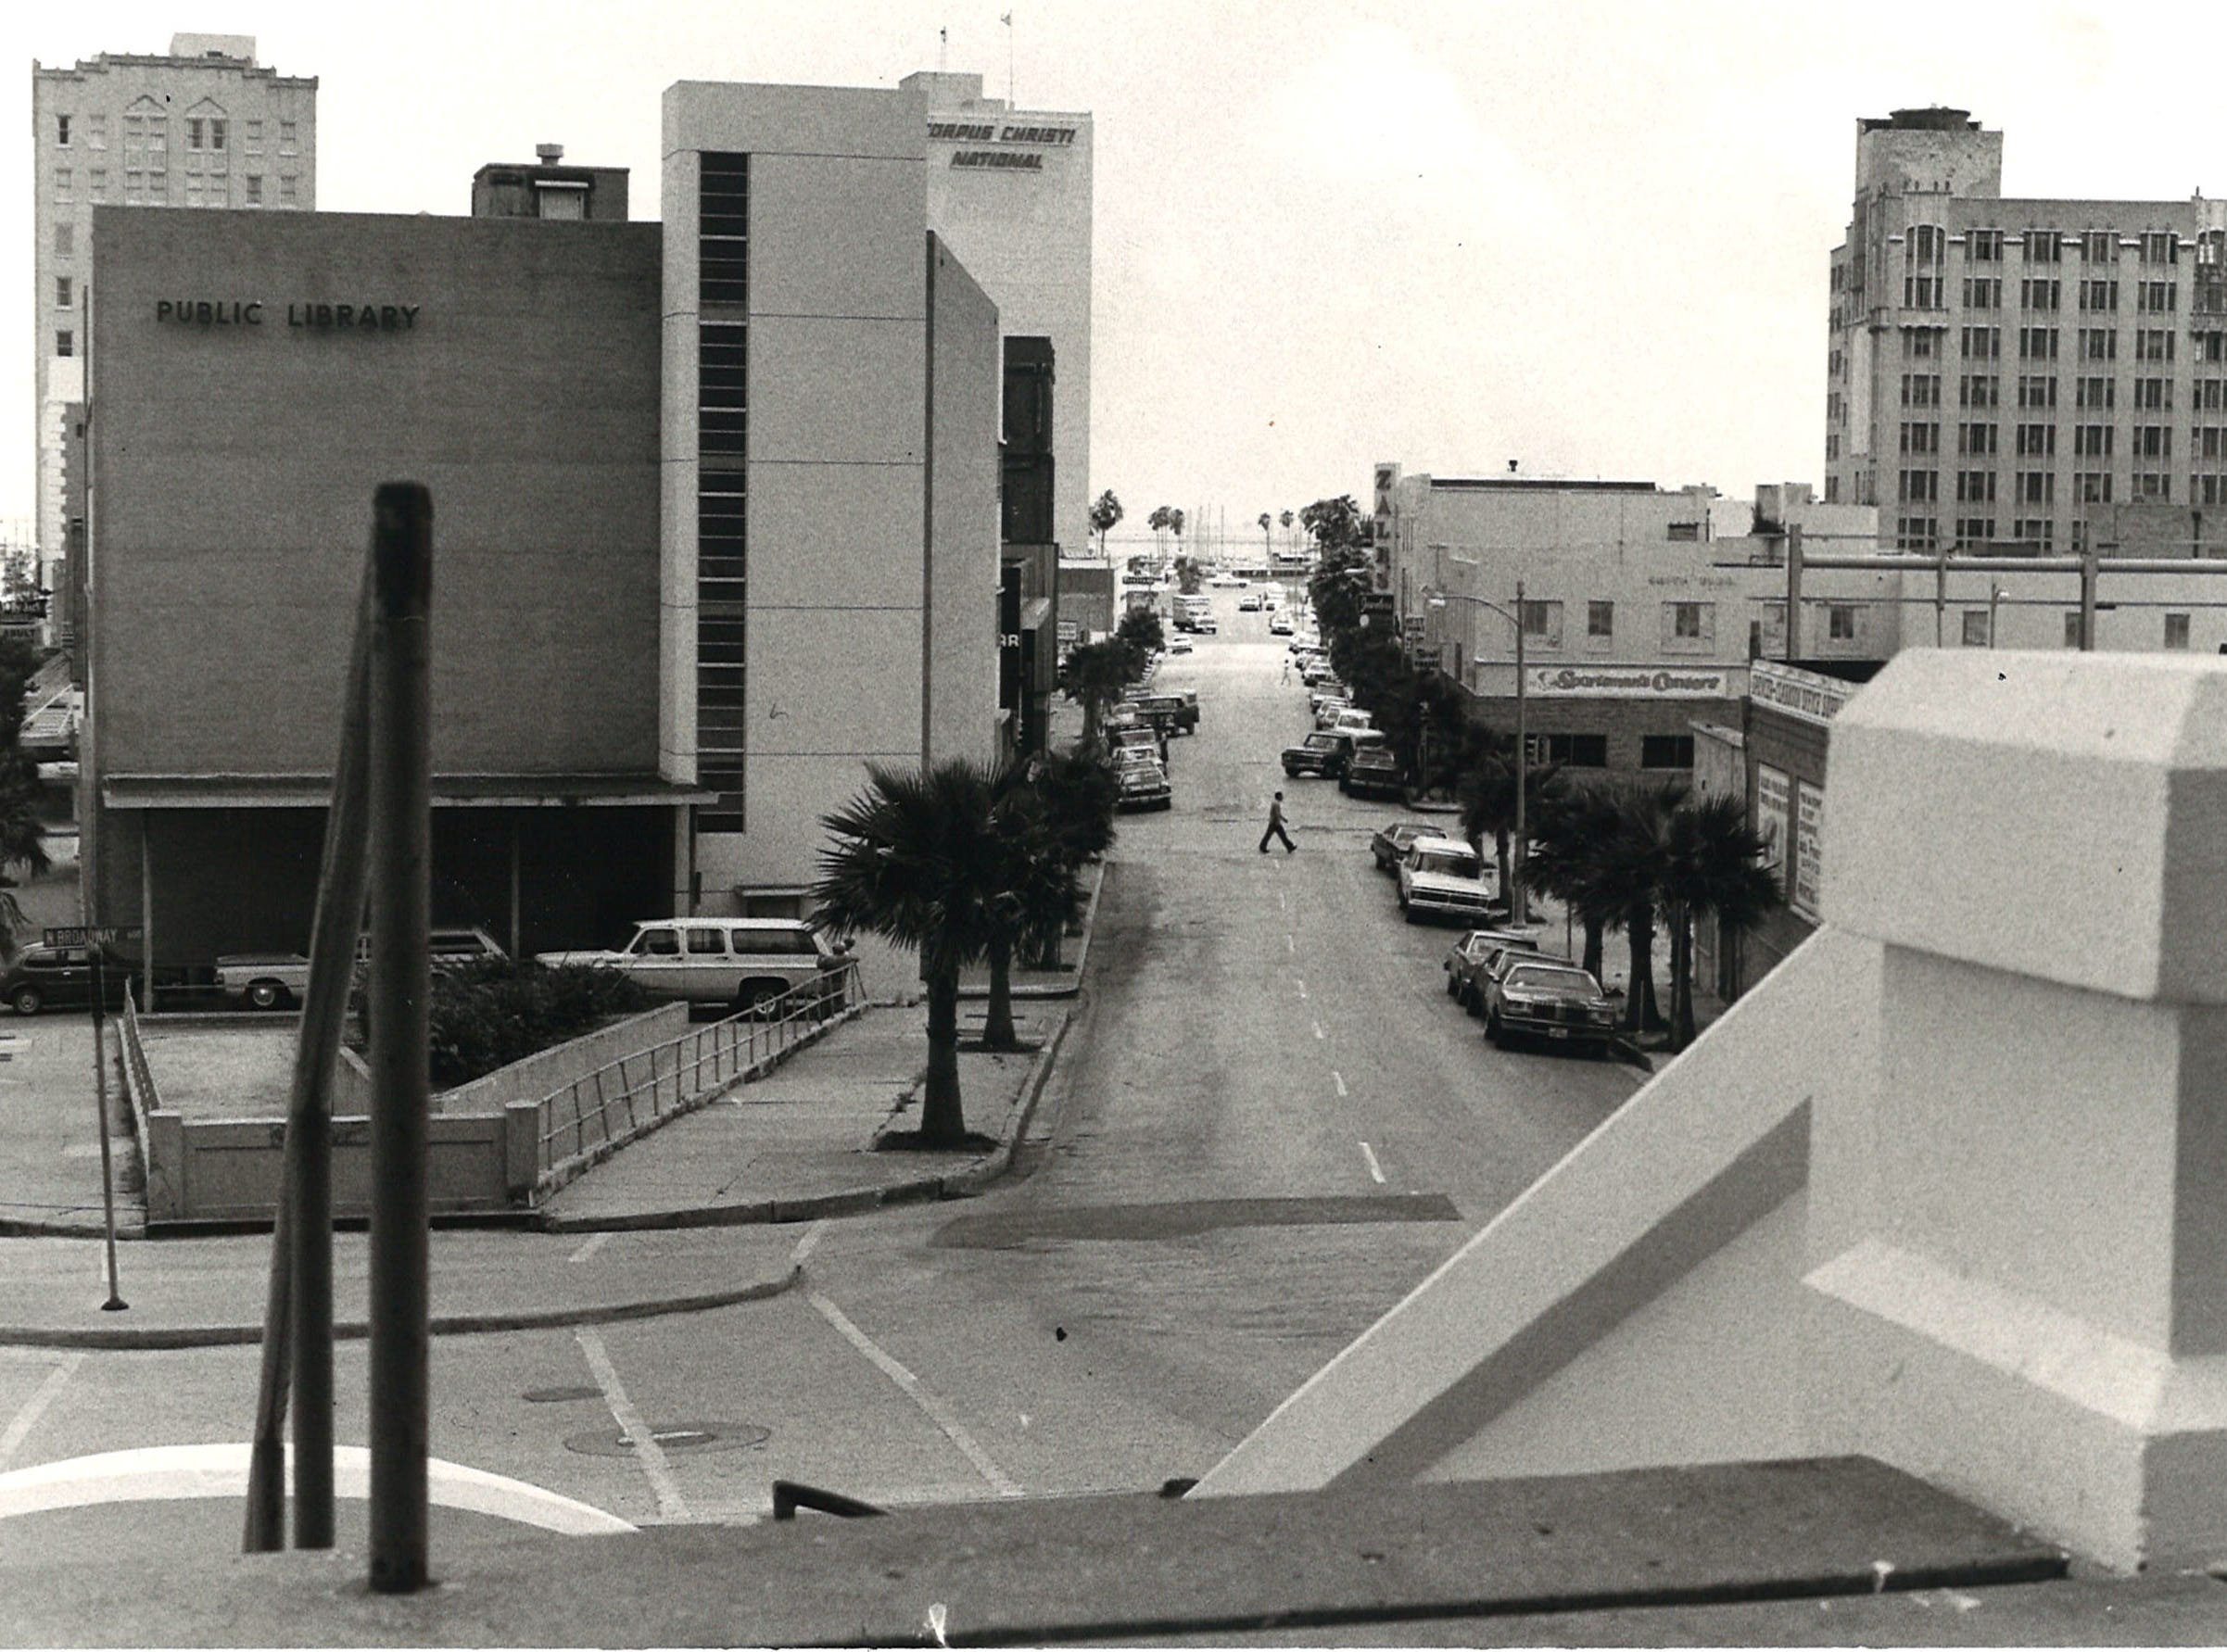 Looking down Schatzell Street in downtown Corpus Christi toward the bay in June 1978. The La Retama Library is on the left.